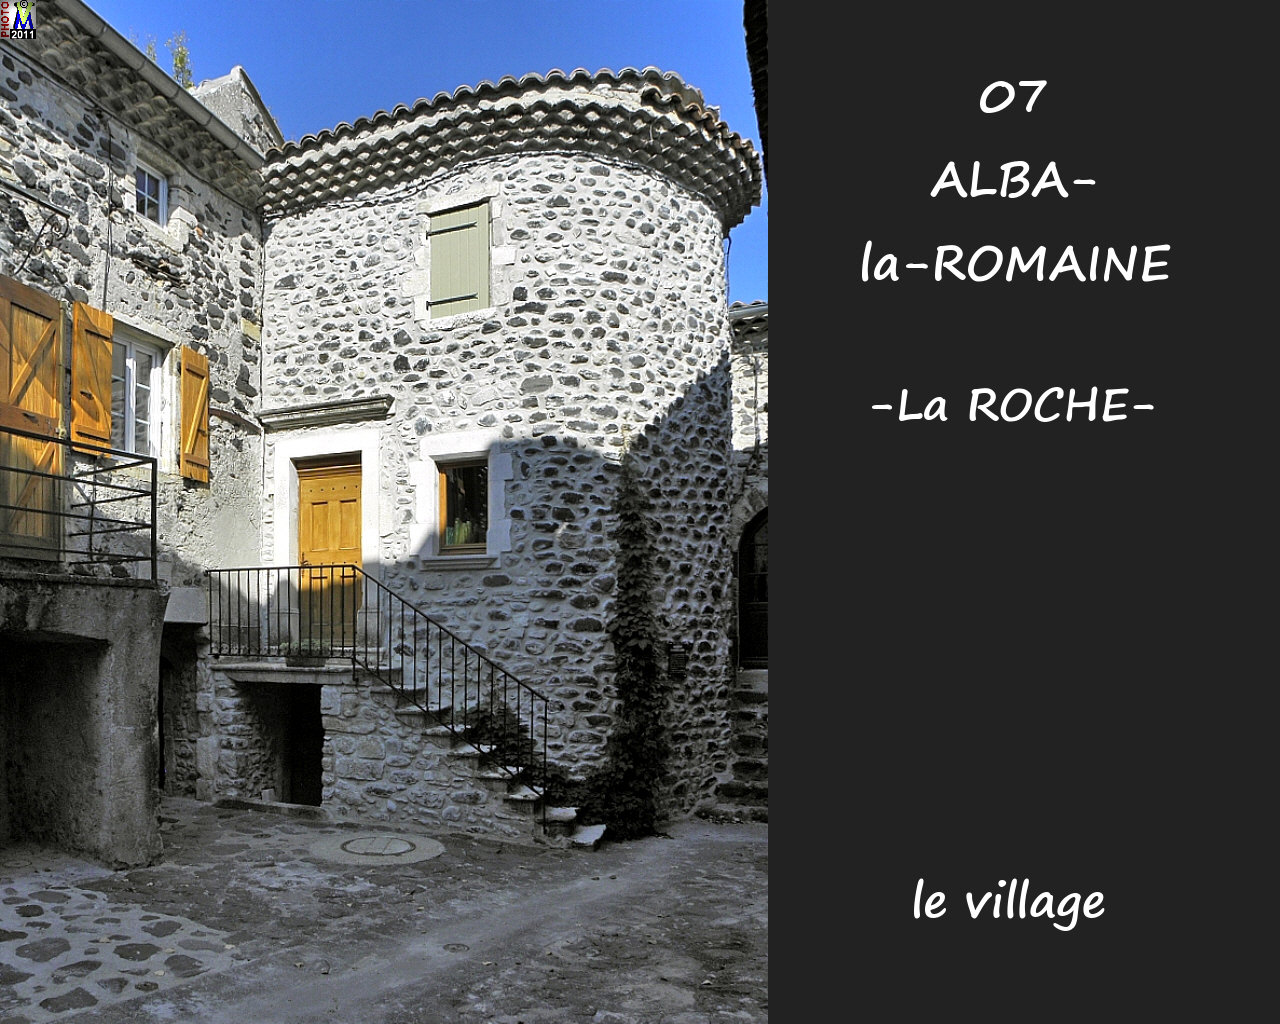 07ALBA-ROMAINEzROCHE_village_106.jpg